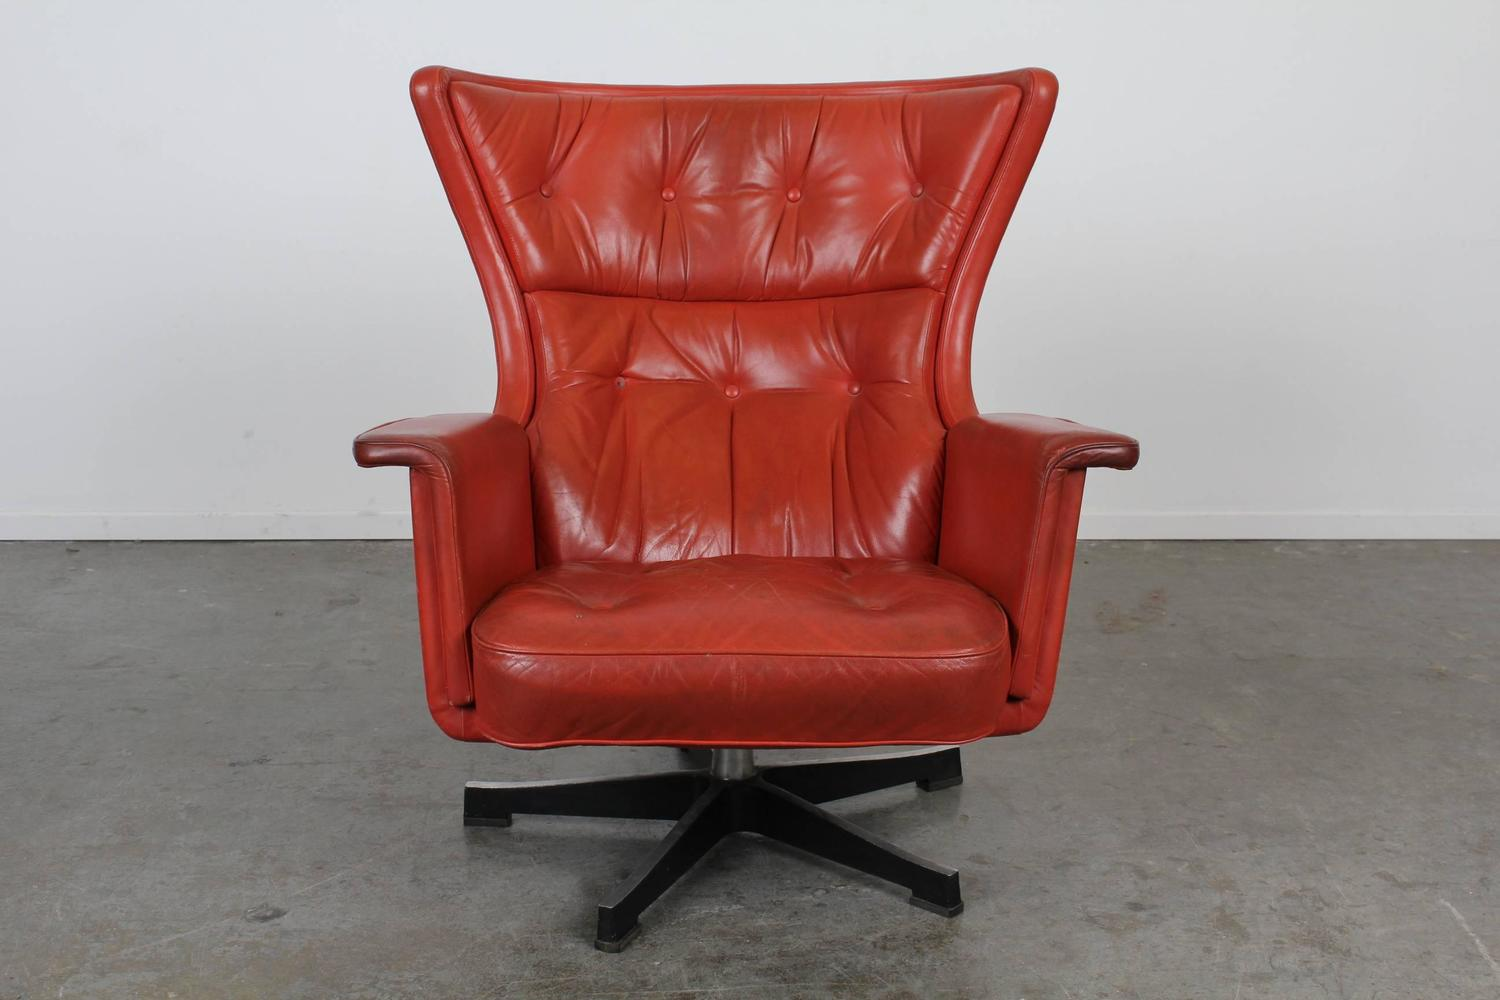 Red Swivel Chair Mid Century Modern Red Leather Swivel Chair At 1stdibs